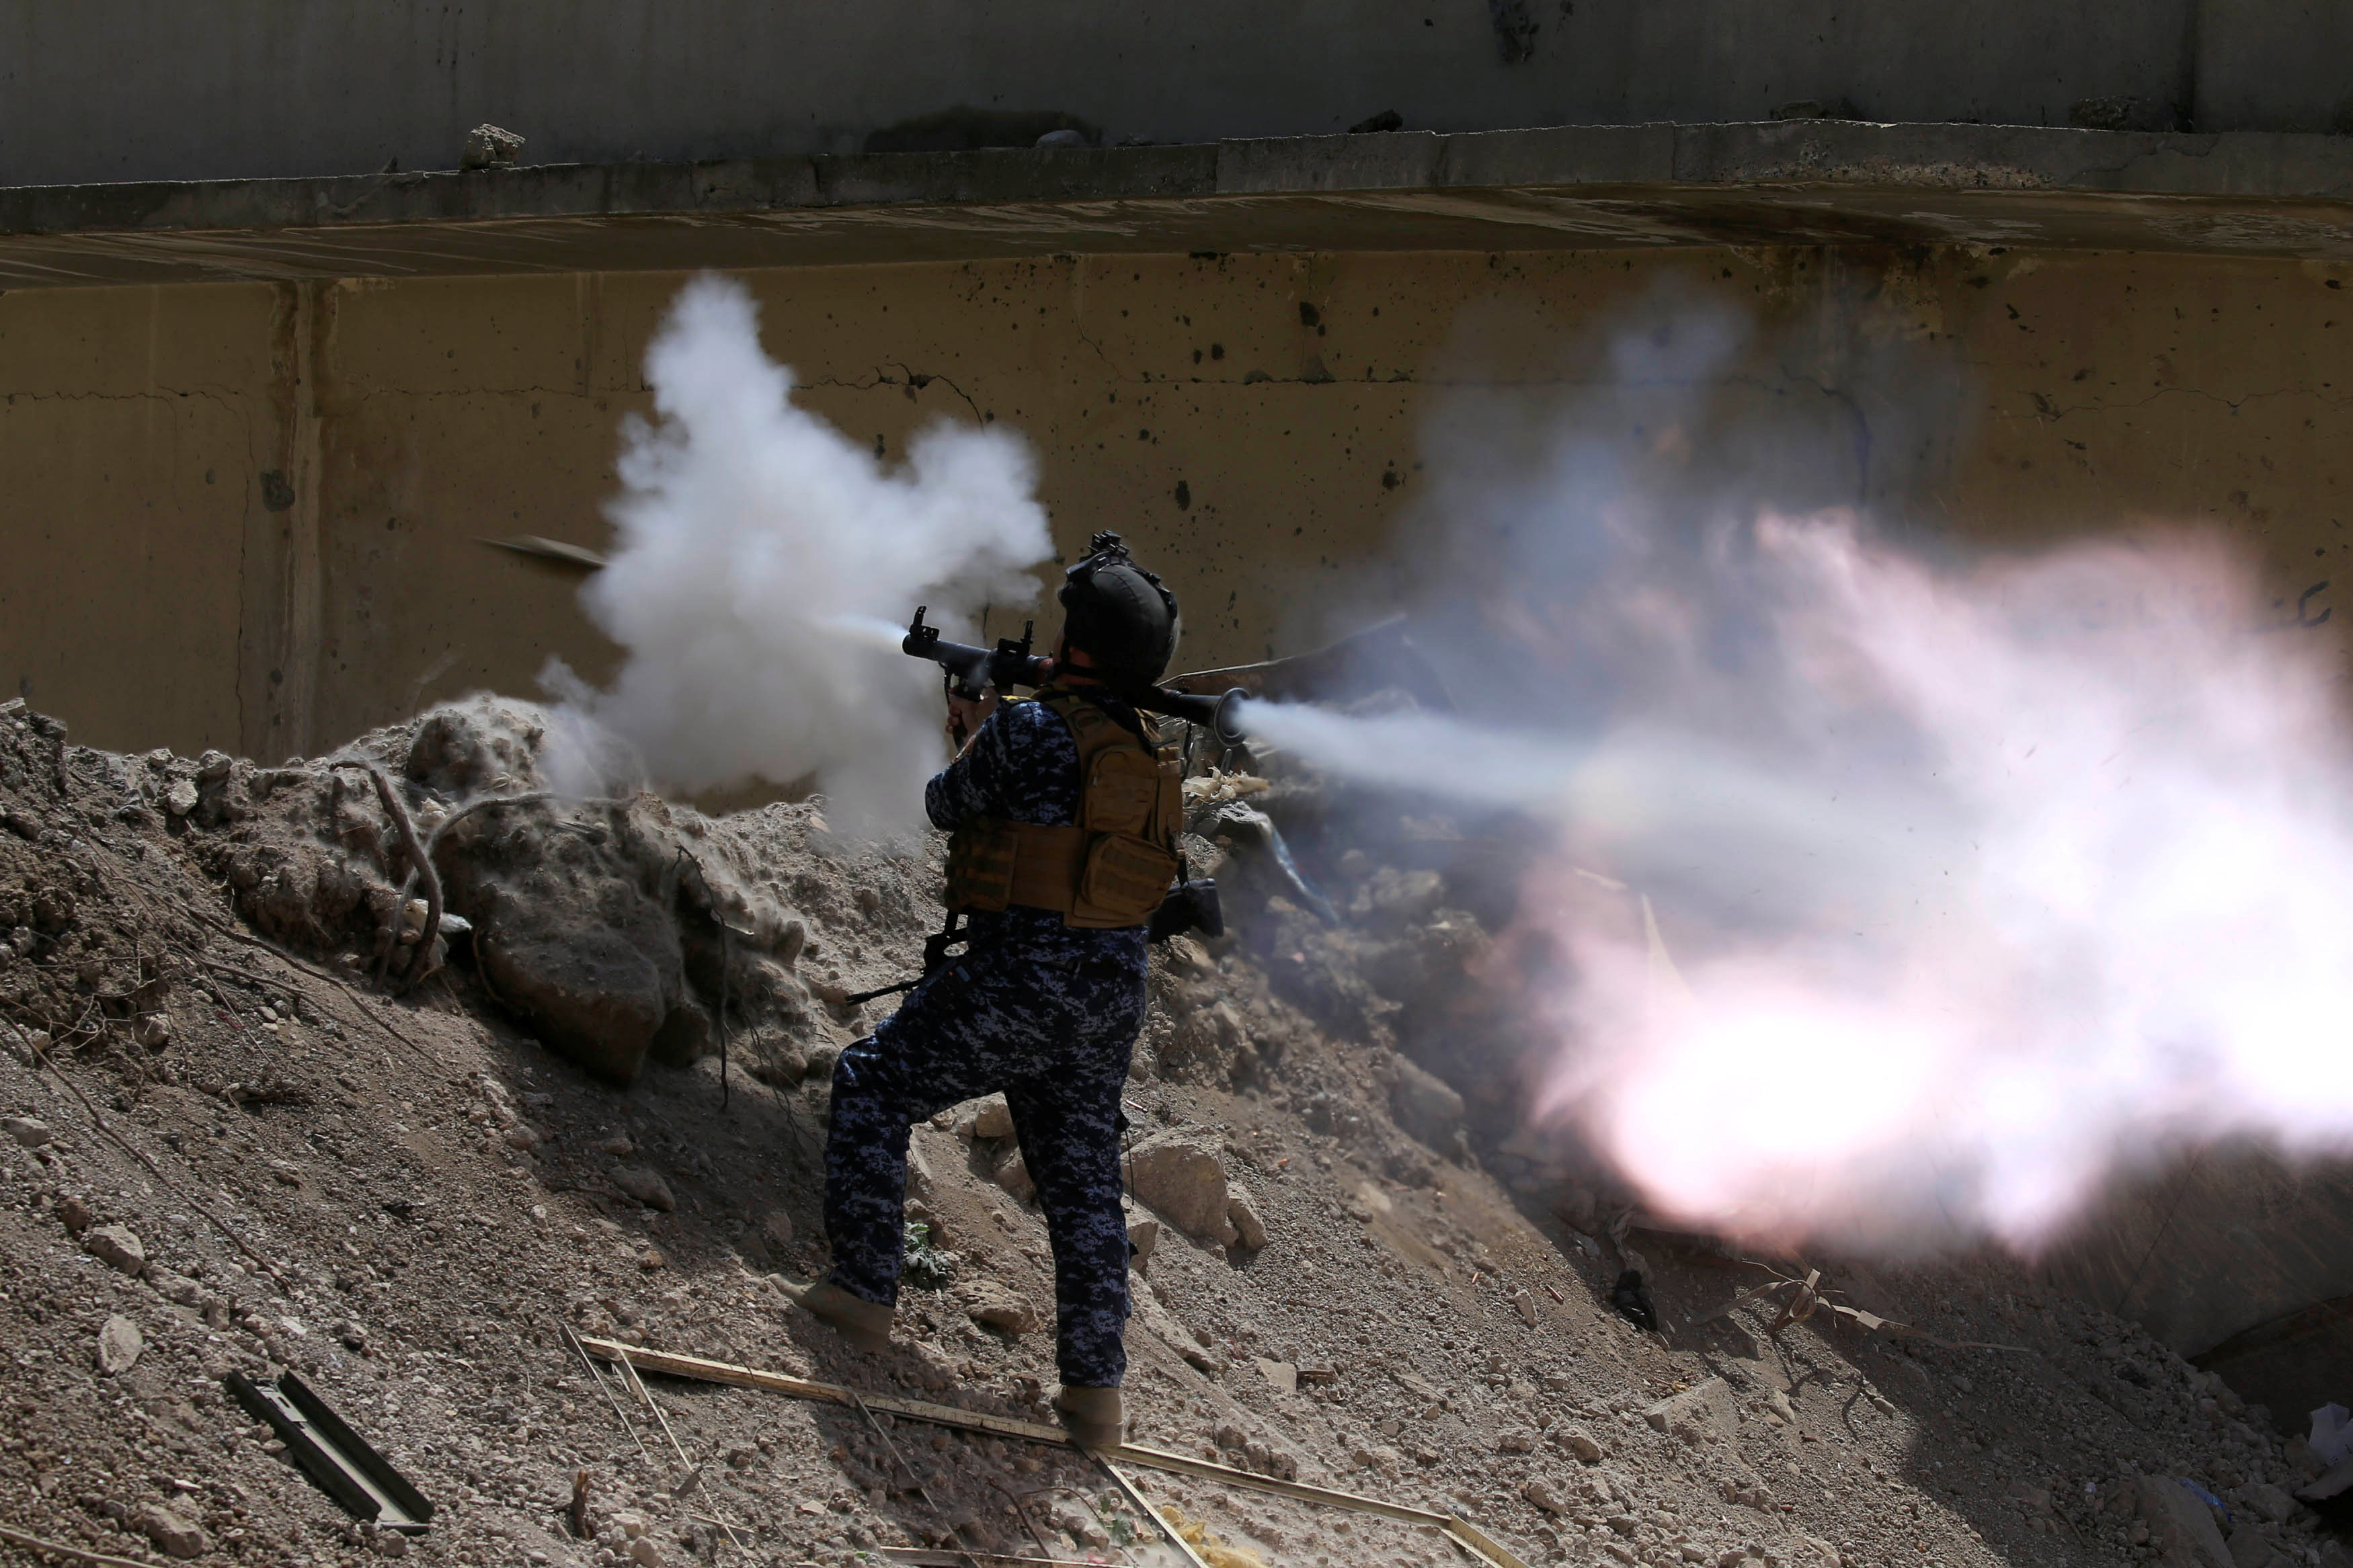 An Iraqi Federal Police member fires an RPG towards Islamic State militants during a battle in western Mosul.